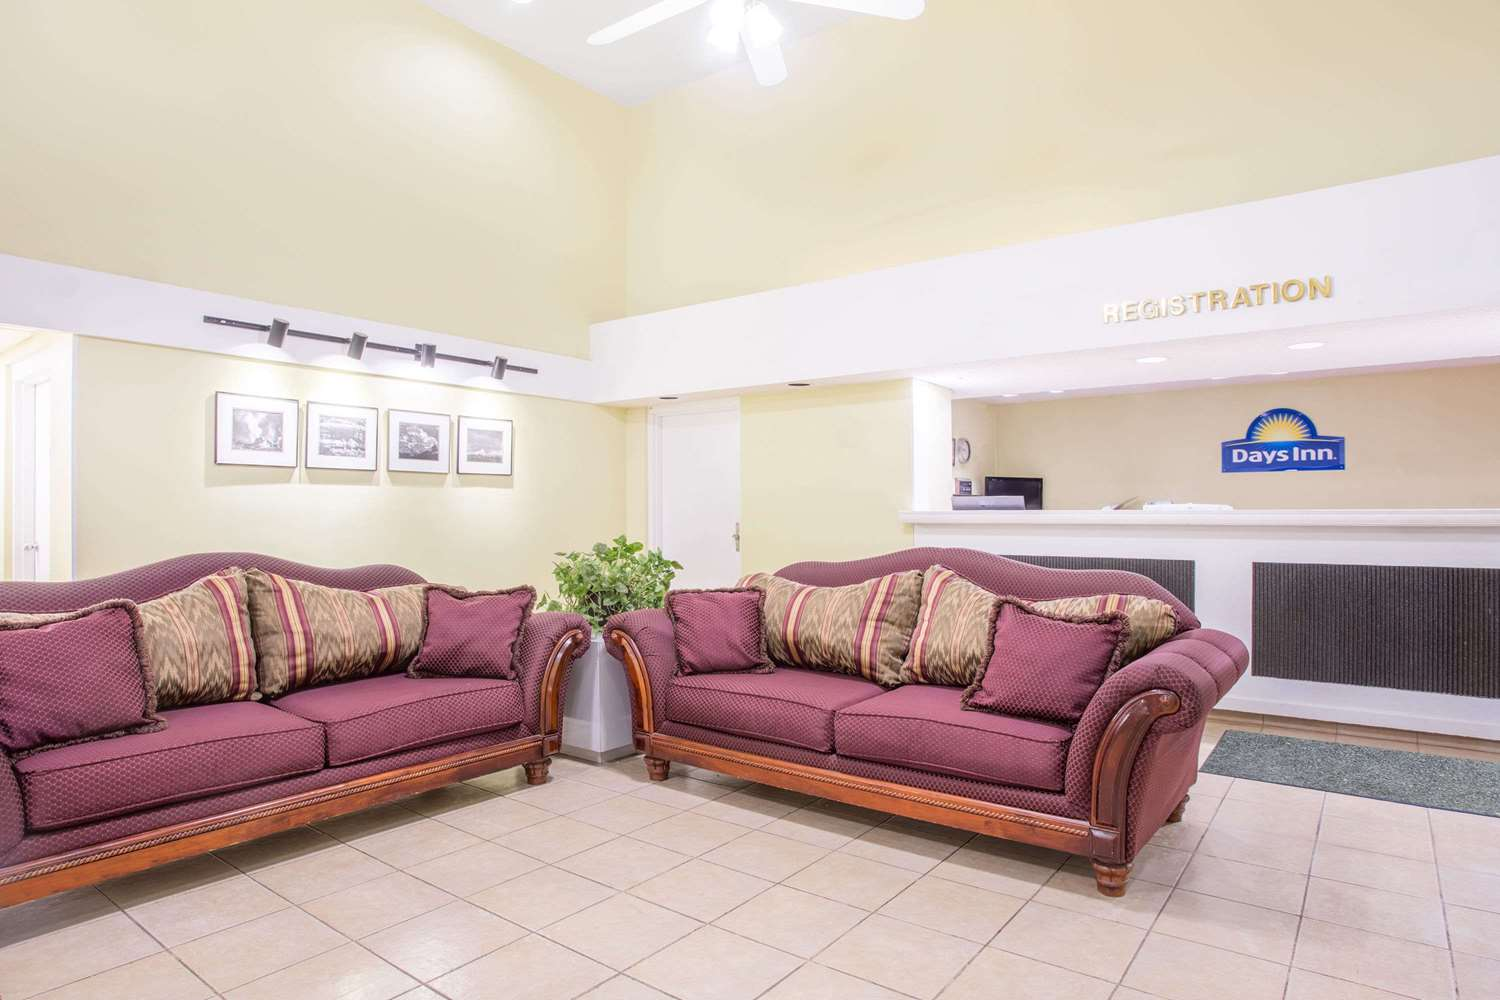 Lobby - Days Inn Waccamaw Spartanburg